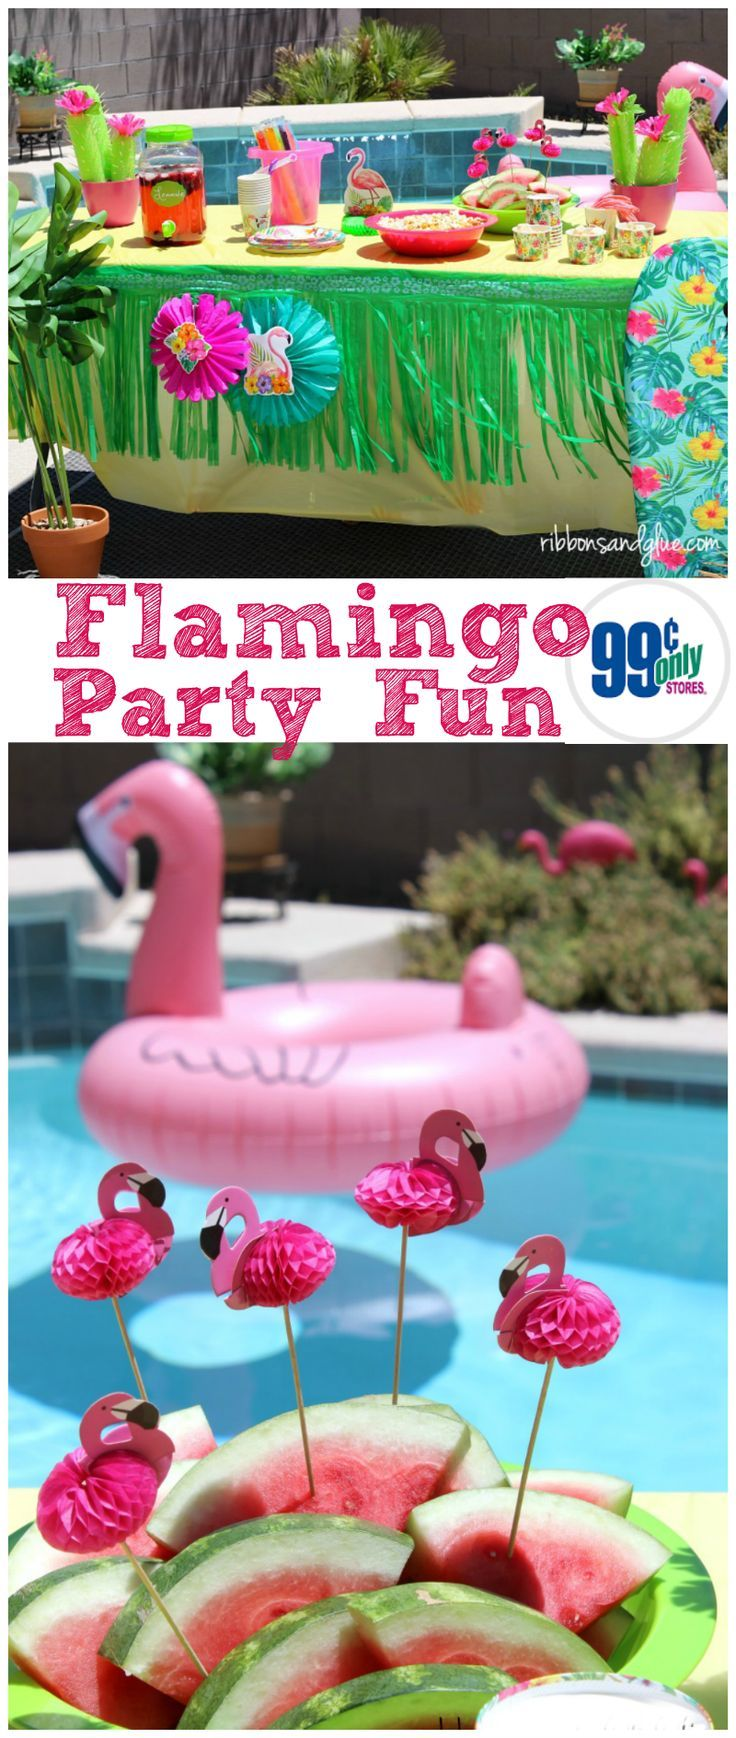 Let's Flamingo Pool Party